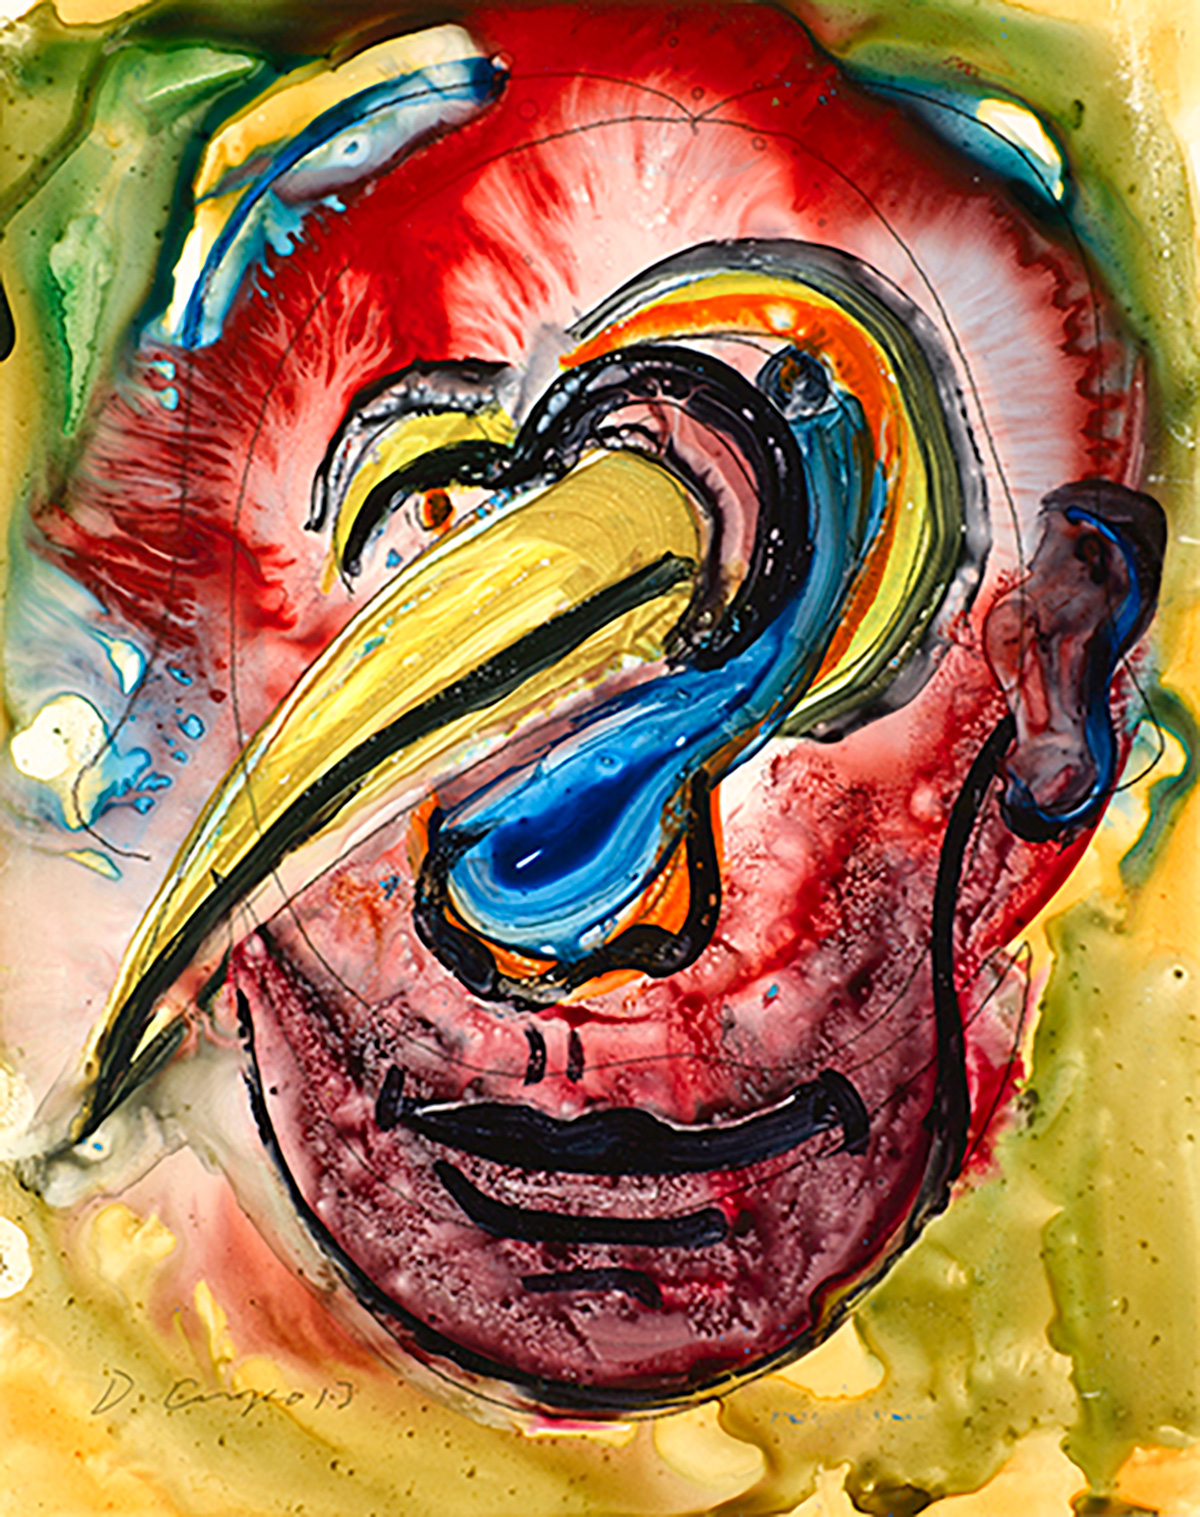 Masks No 12 giclee DSC2079 Dick Crispo